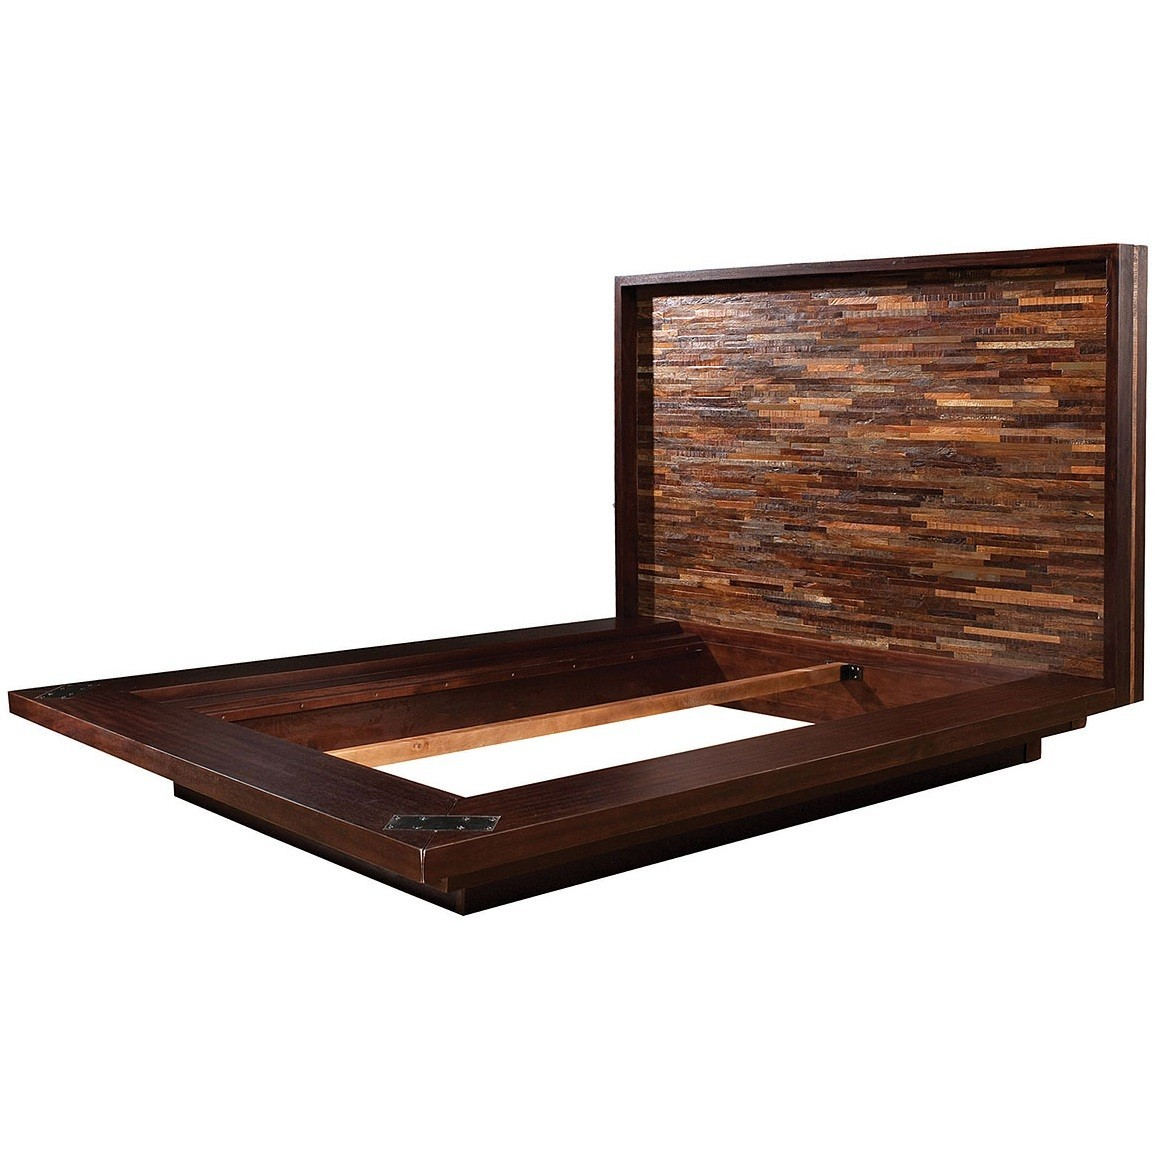 Image of: solid wood platform bed frame